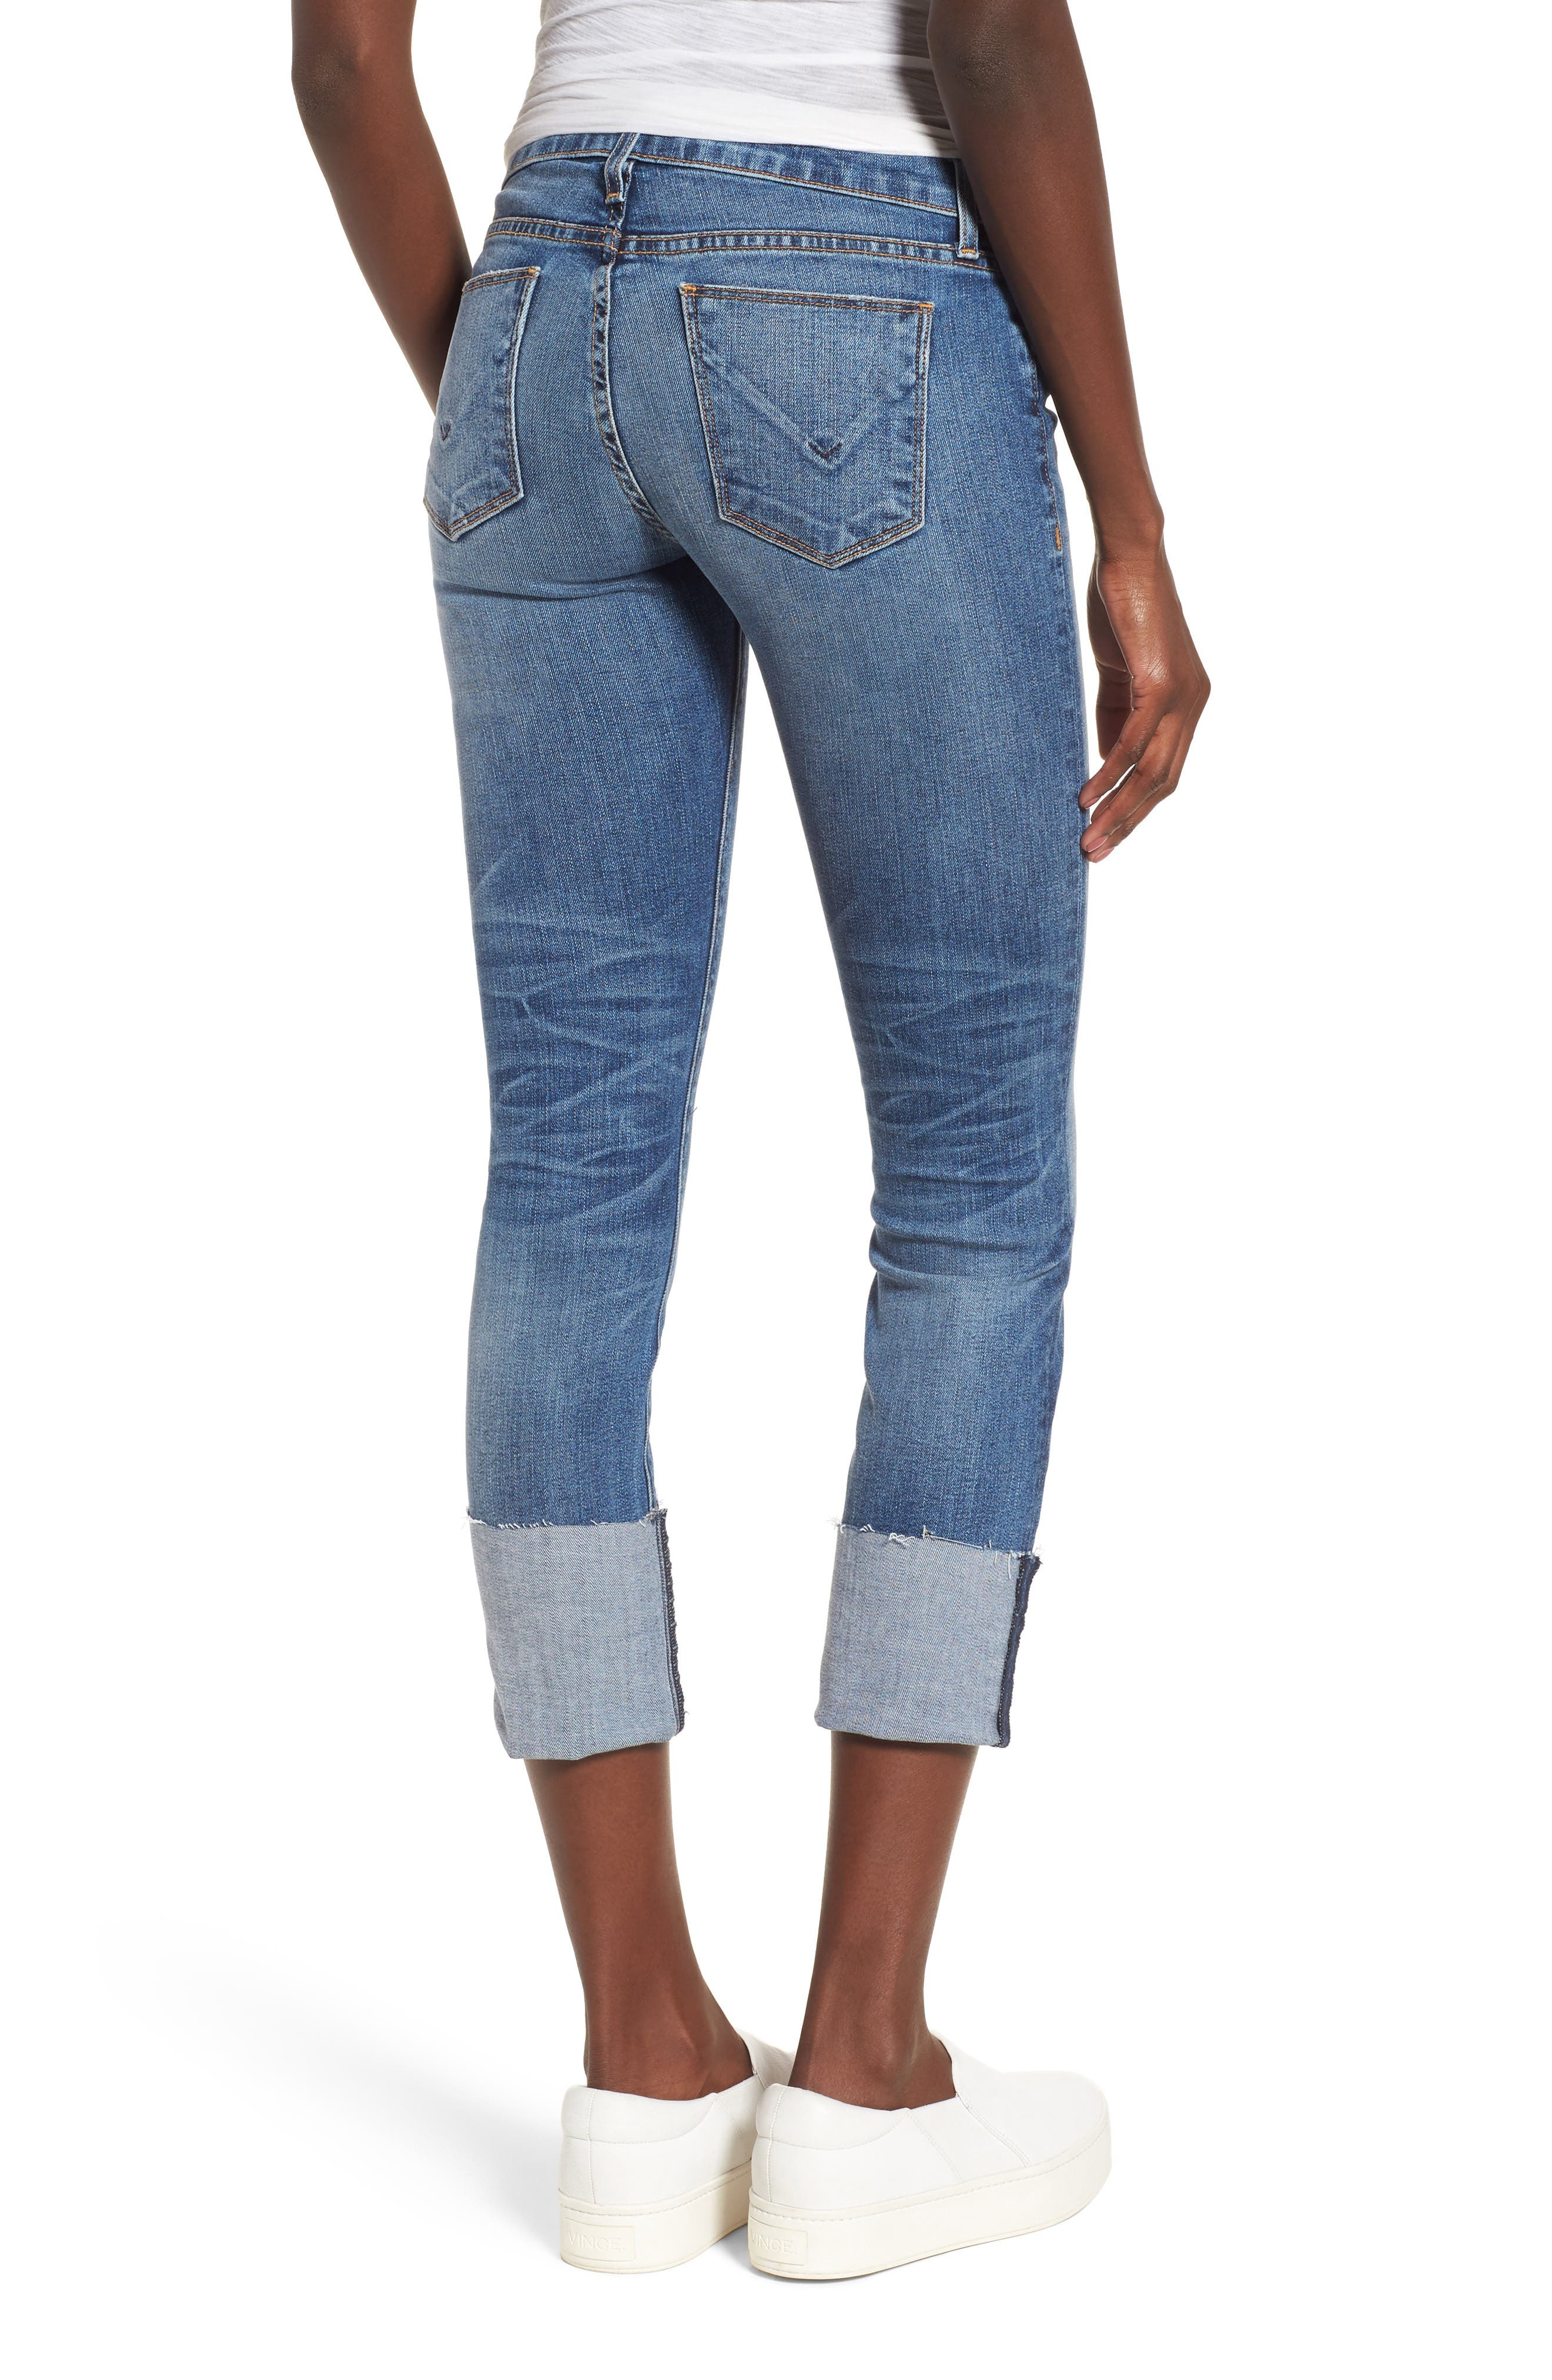 HUDSON JEANS,                             Tally Cuffed Crop Skinny Jeans,                             Alternate thumbnail 2, color,                             426